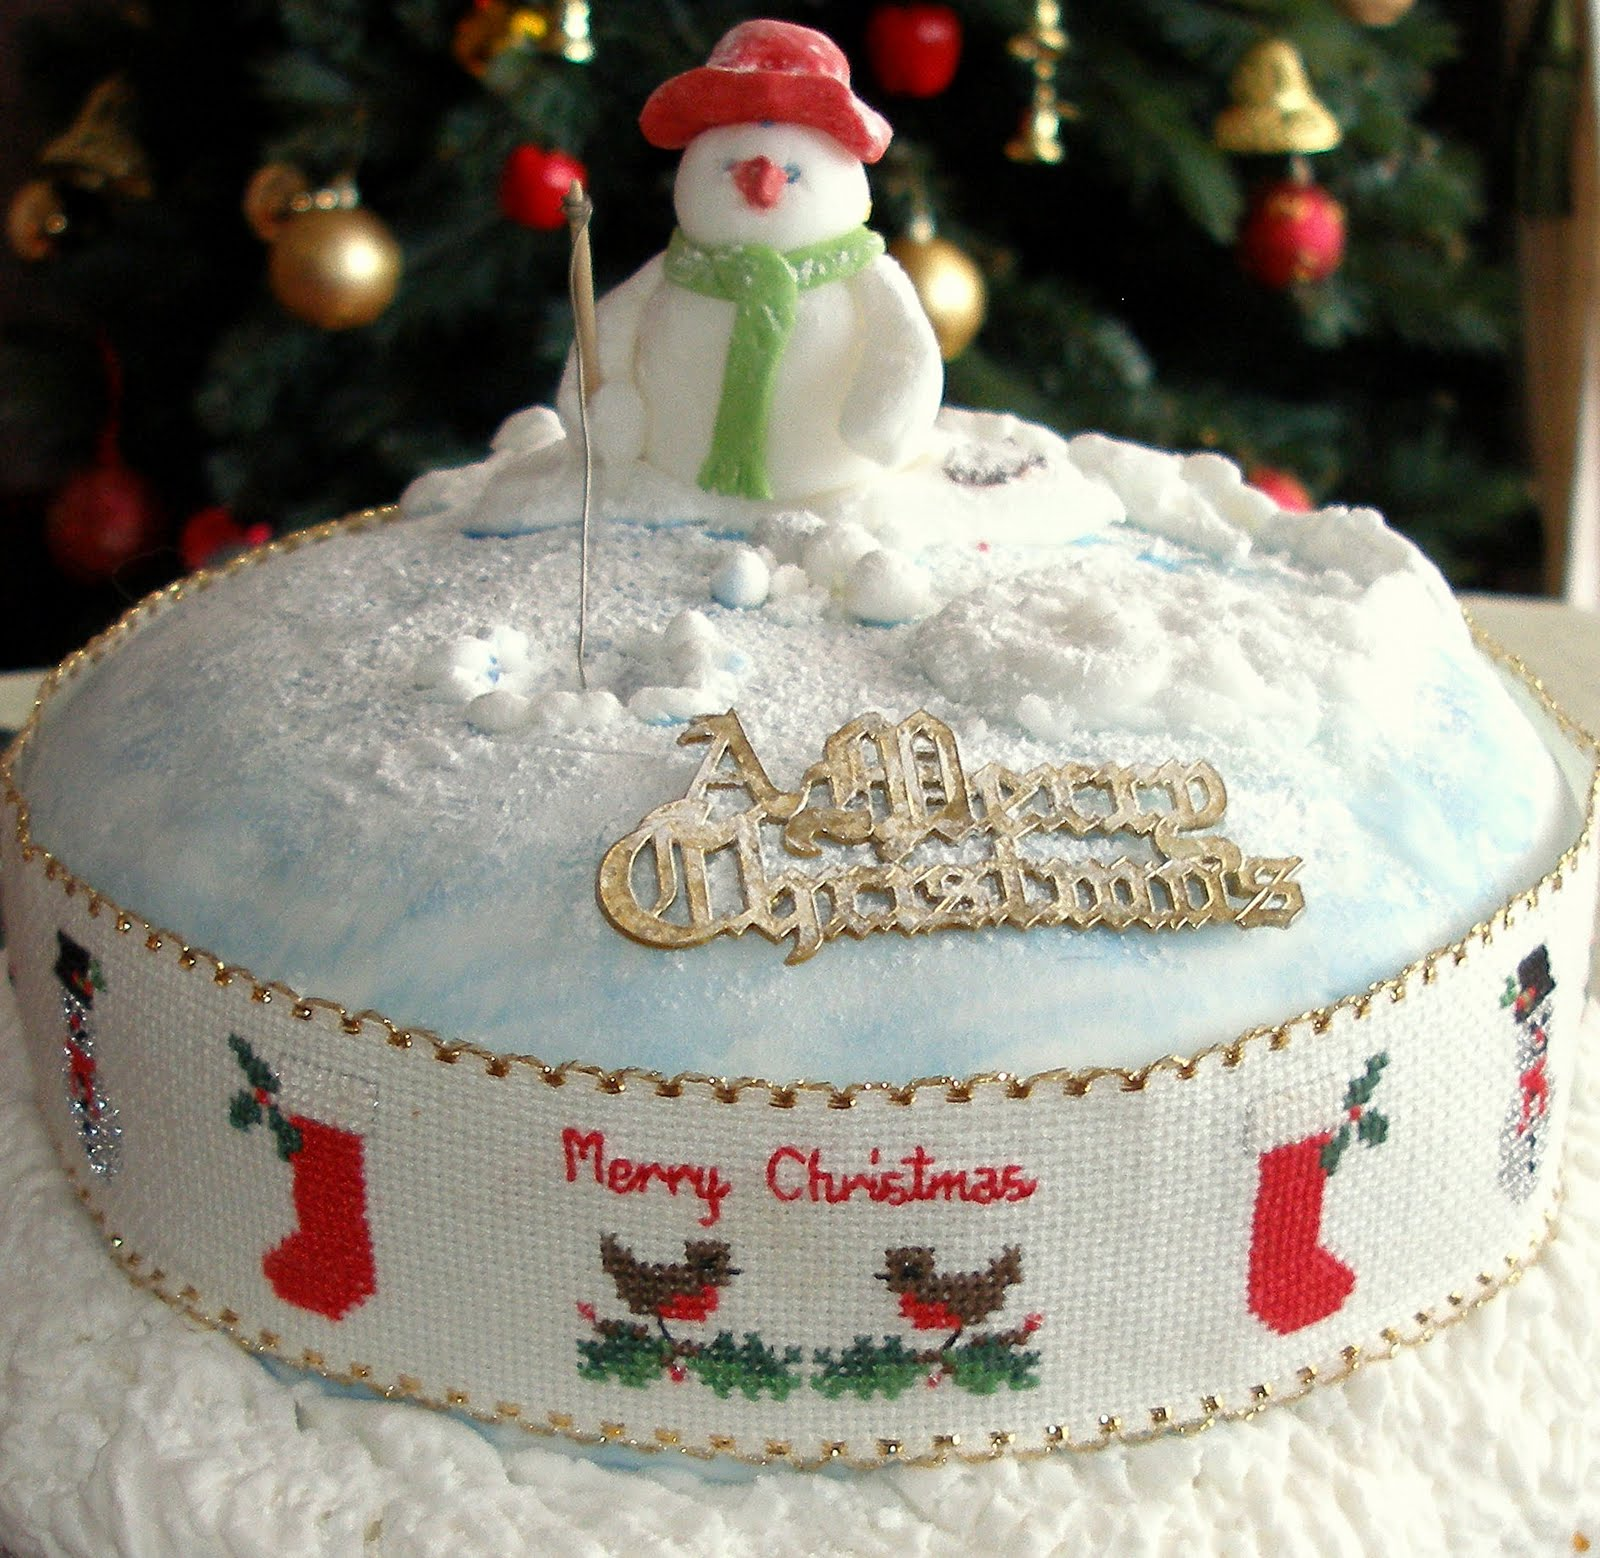 Decorations For Christmas Cakes: Musings Of A Senior Citizen: Christmas Cake